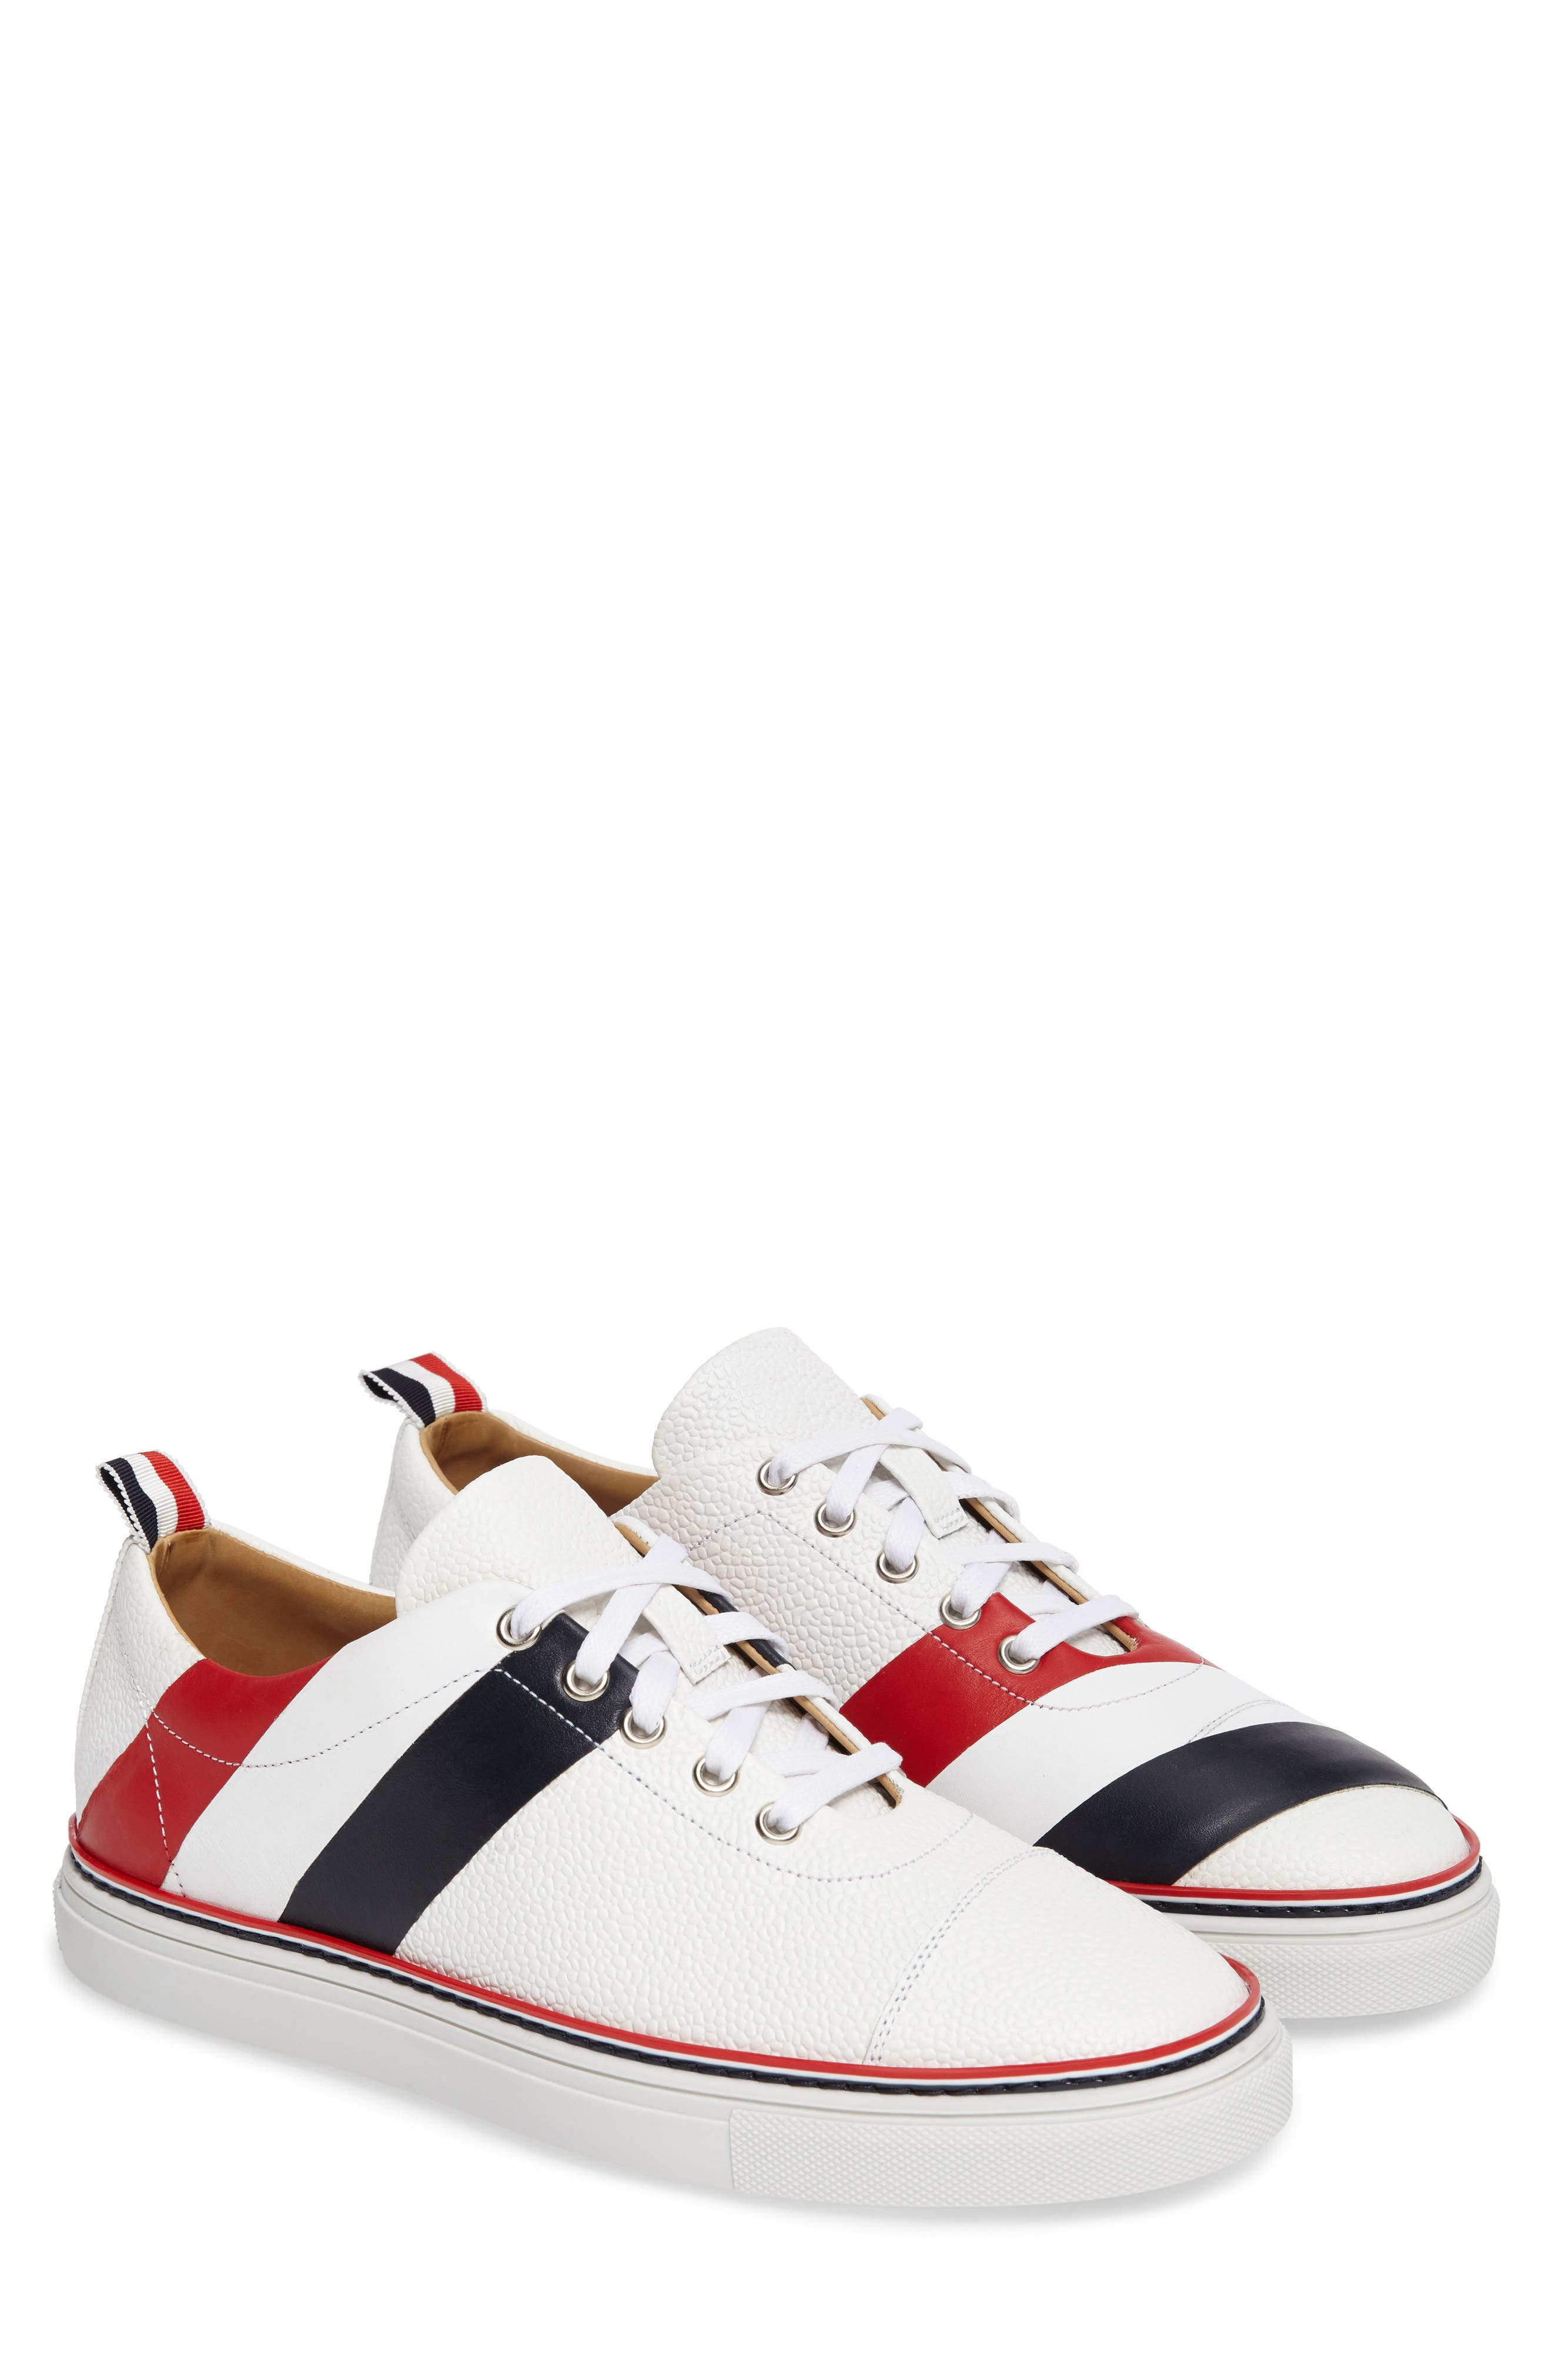 Asymmetrical Stripe Sneaker,                             Main thumbnail 1, color,                             100 White